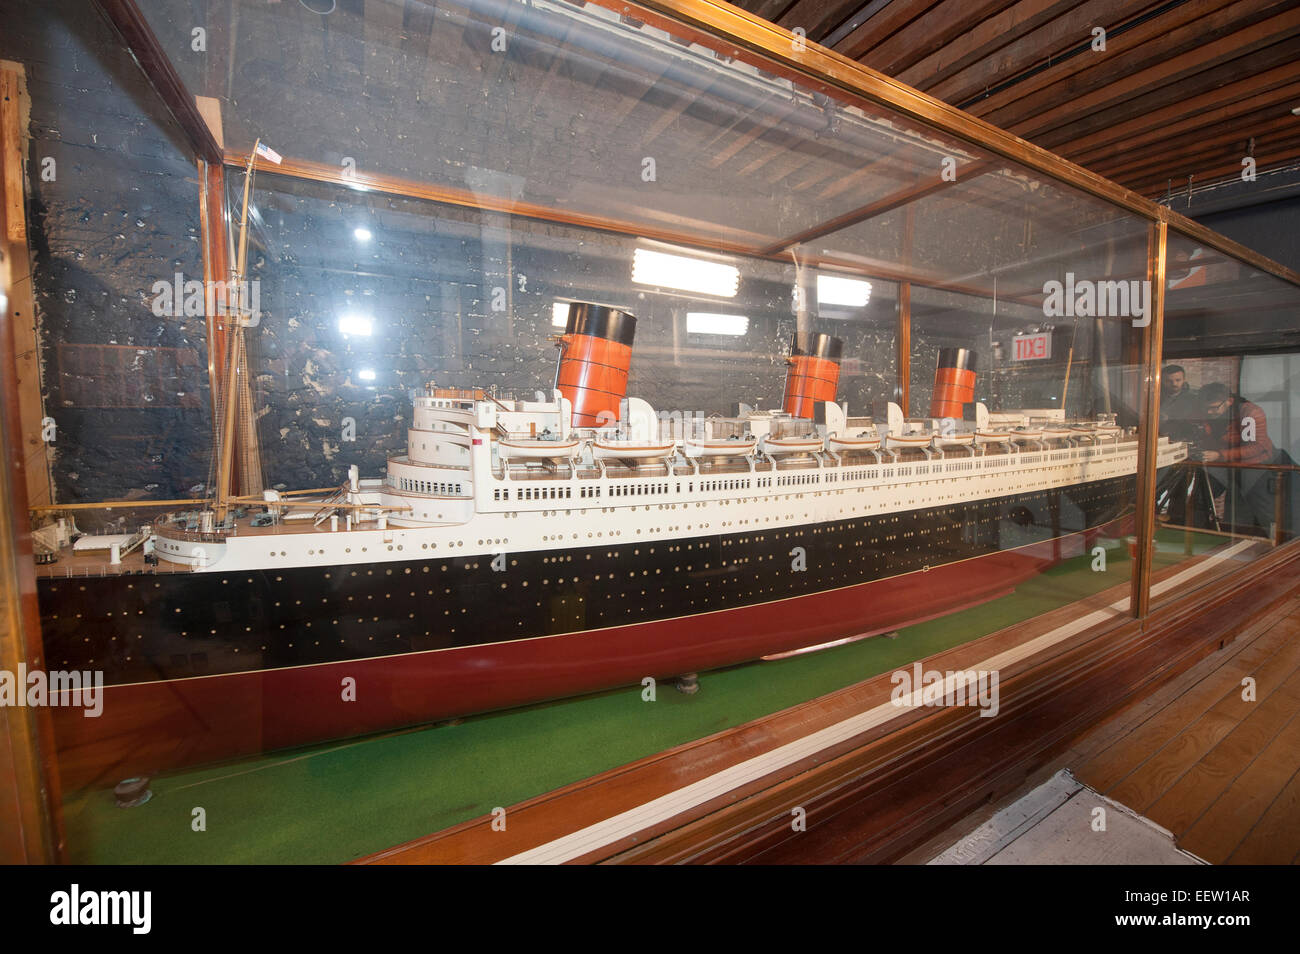 New York, USA. 21st January, 2015. A 21-foot-long model of Cunard's ocean liner, Queen Mary, was moved out of - Stock Image